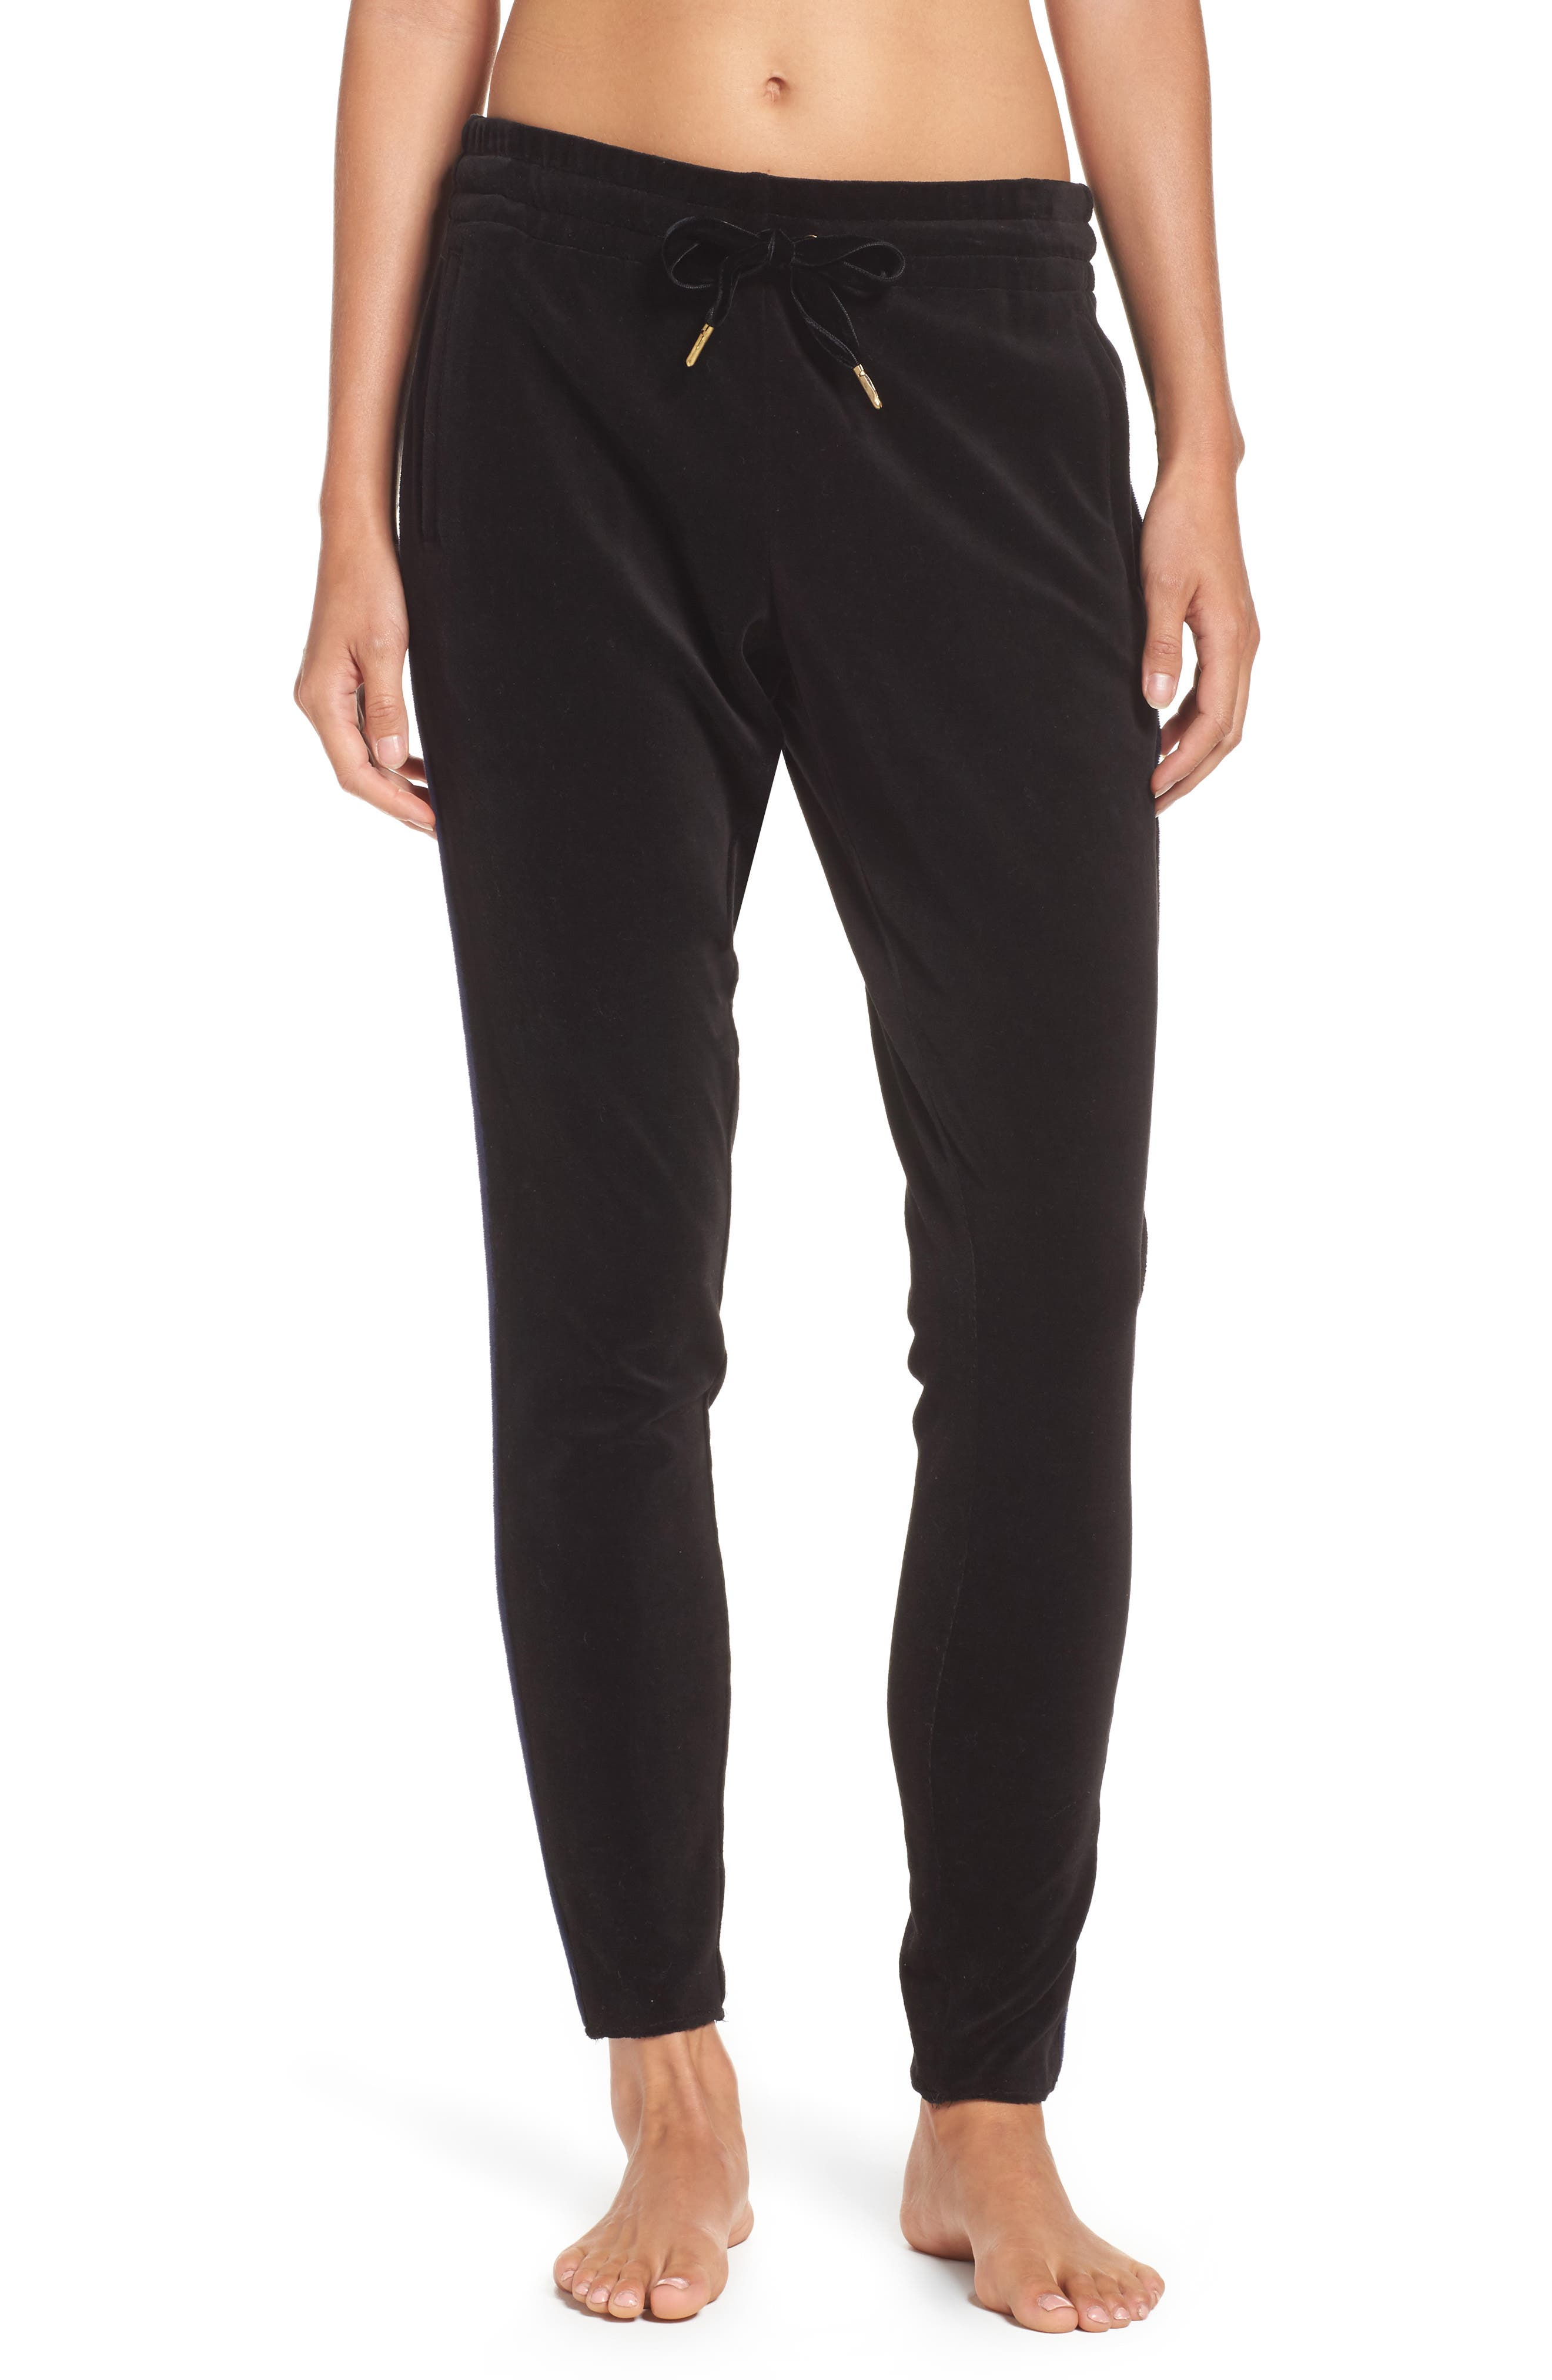 Alternate Image 1 Selected - ALALA Velour Sweatpants